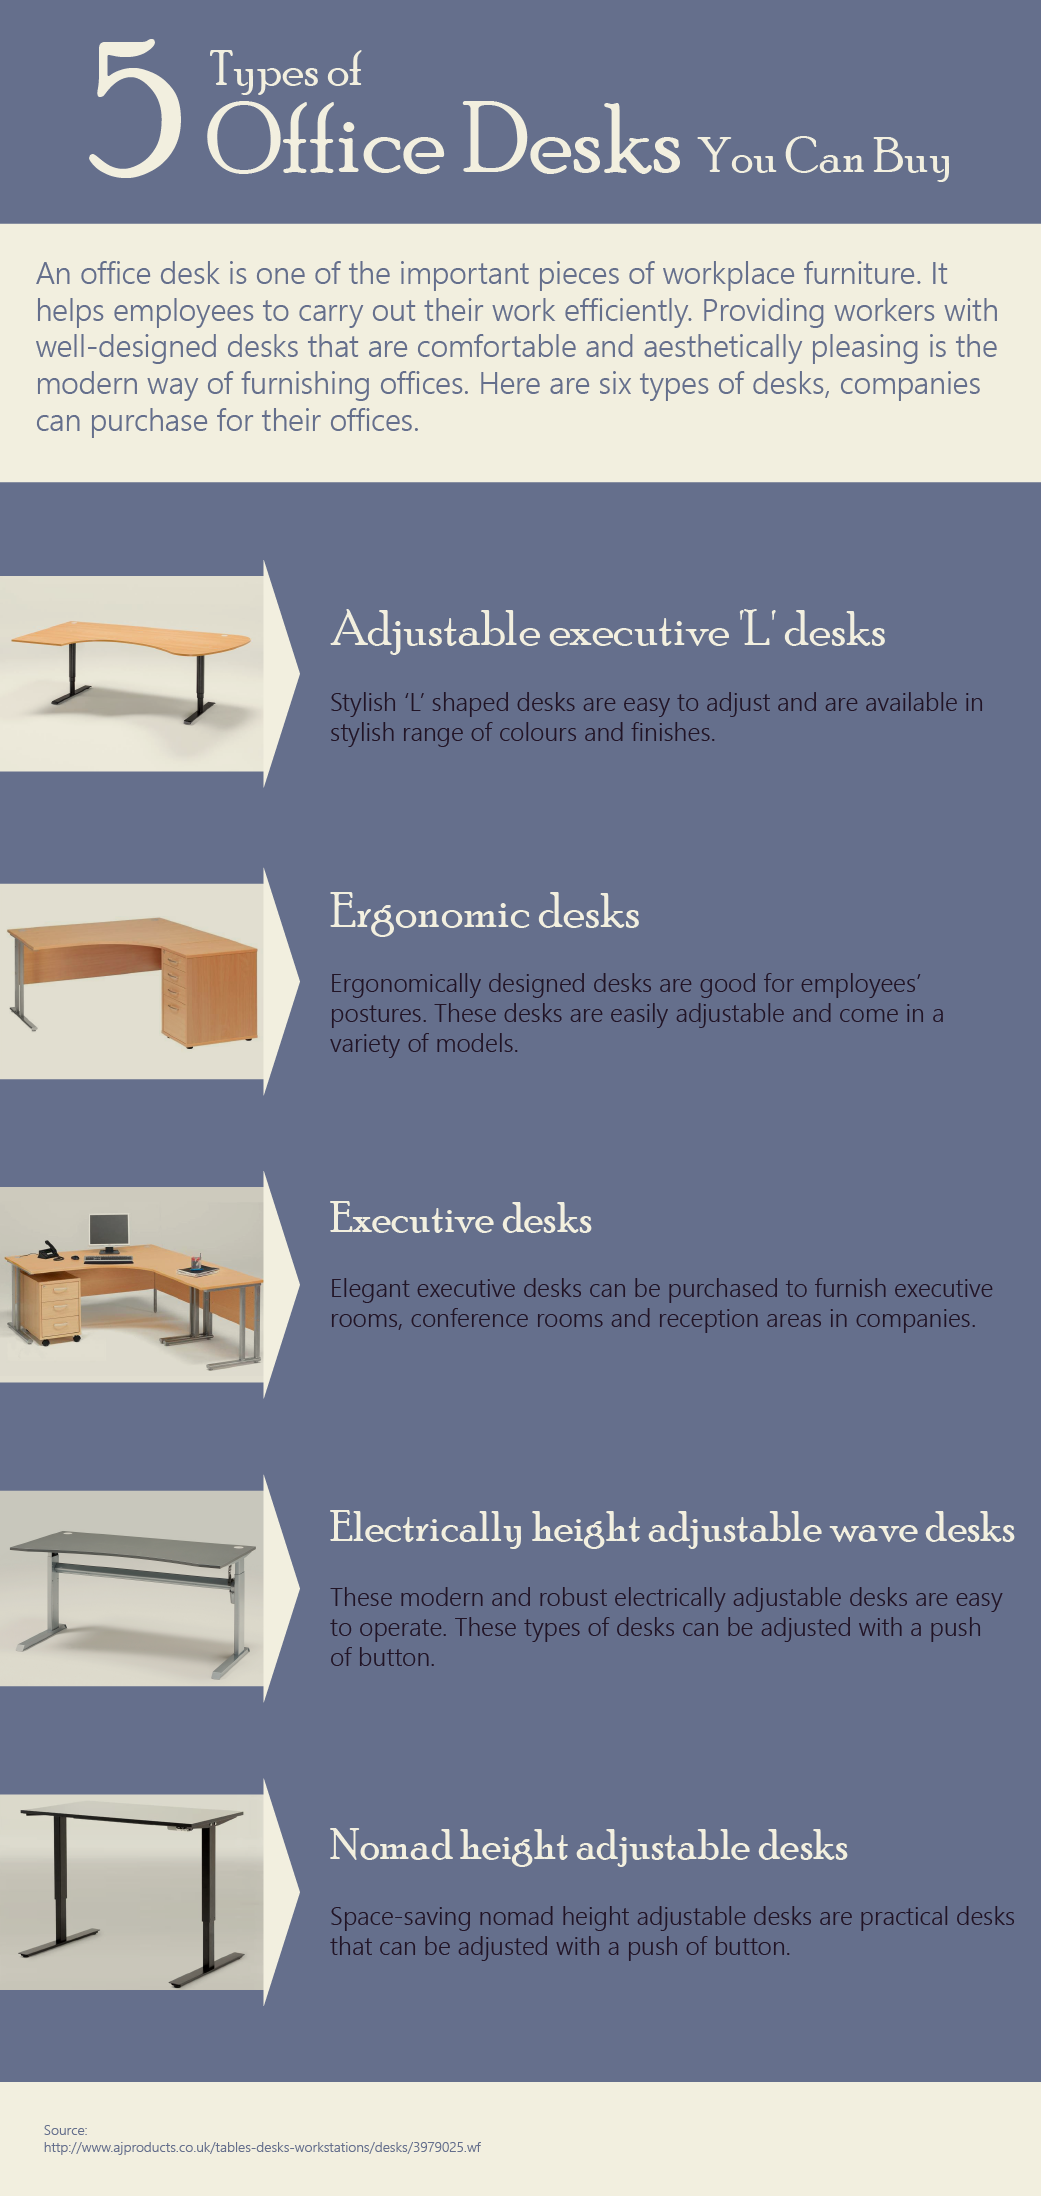 Desk Types 5 types of office desks you can buy. | visual.ly